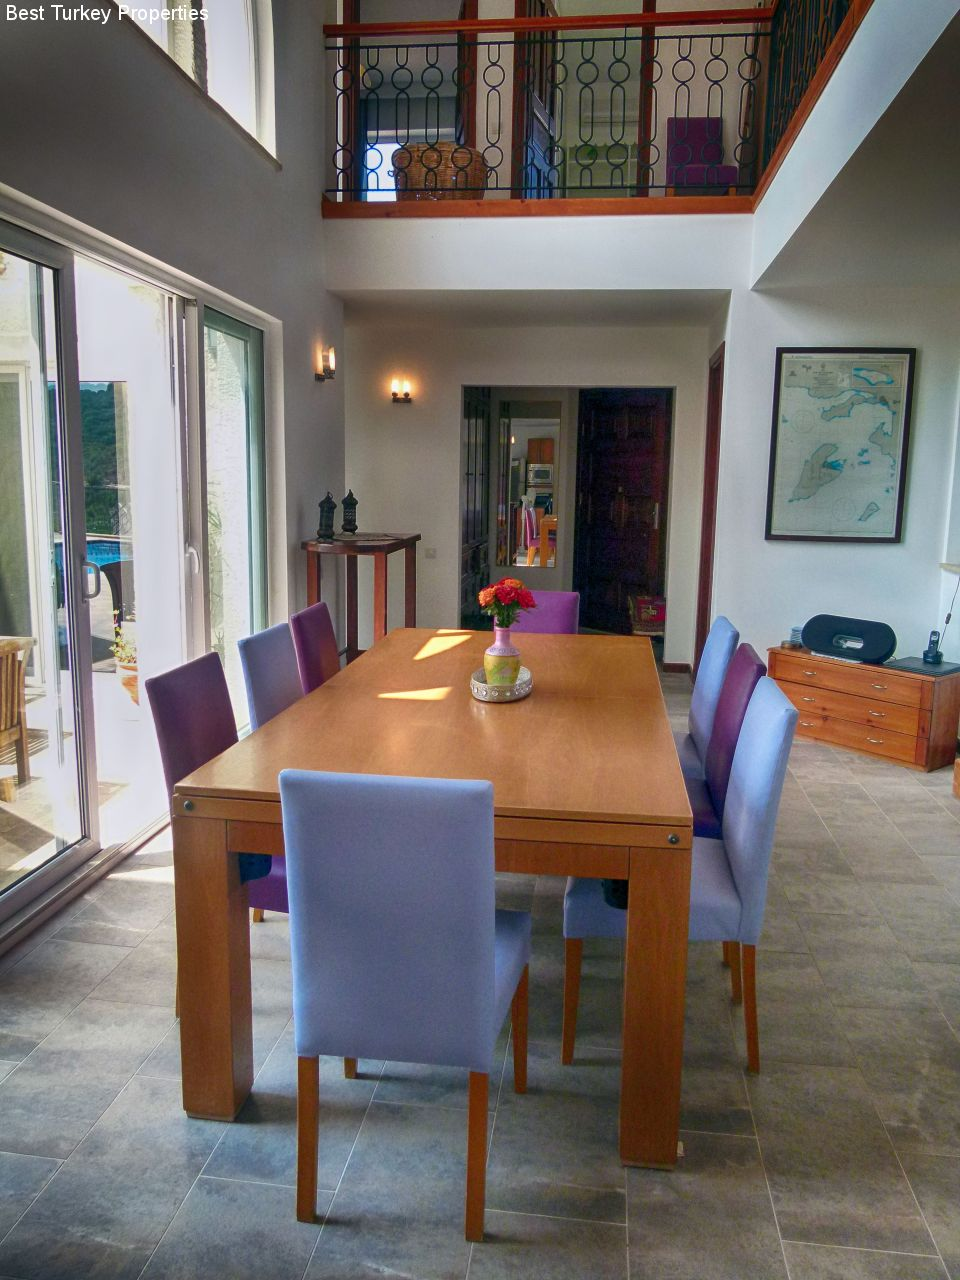 a The Dining Room towards the Entrance Vestibulewith French Window Doors onto the Courtyard